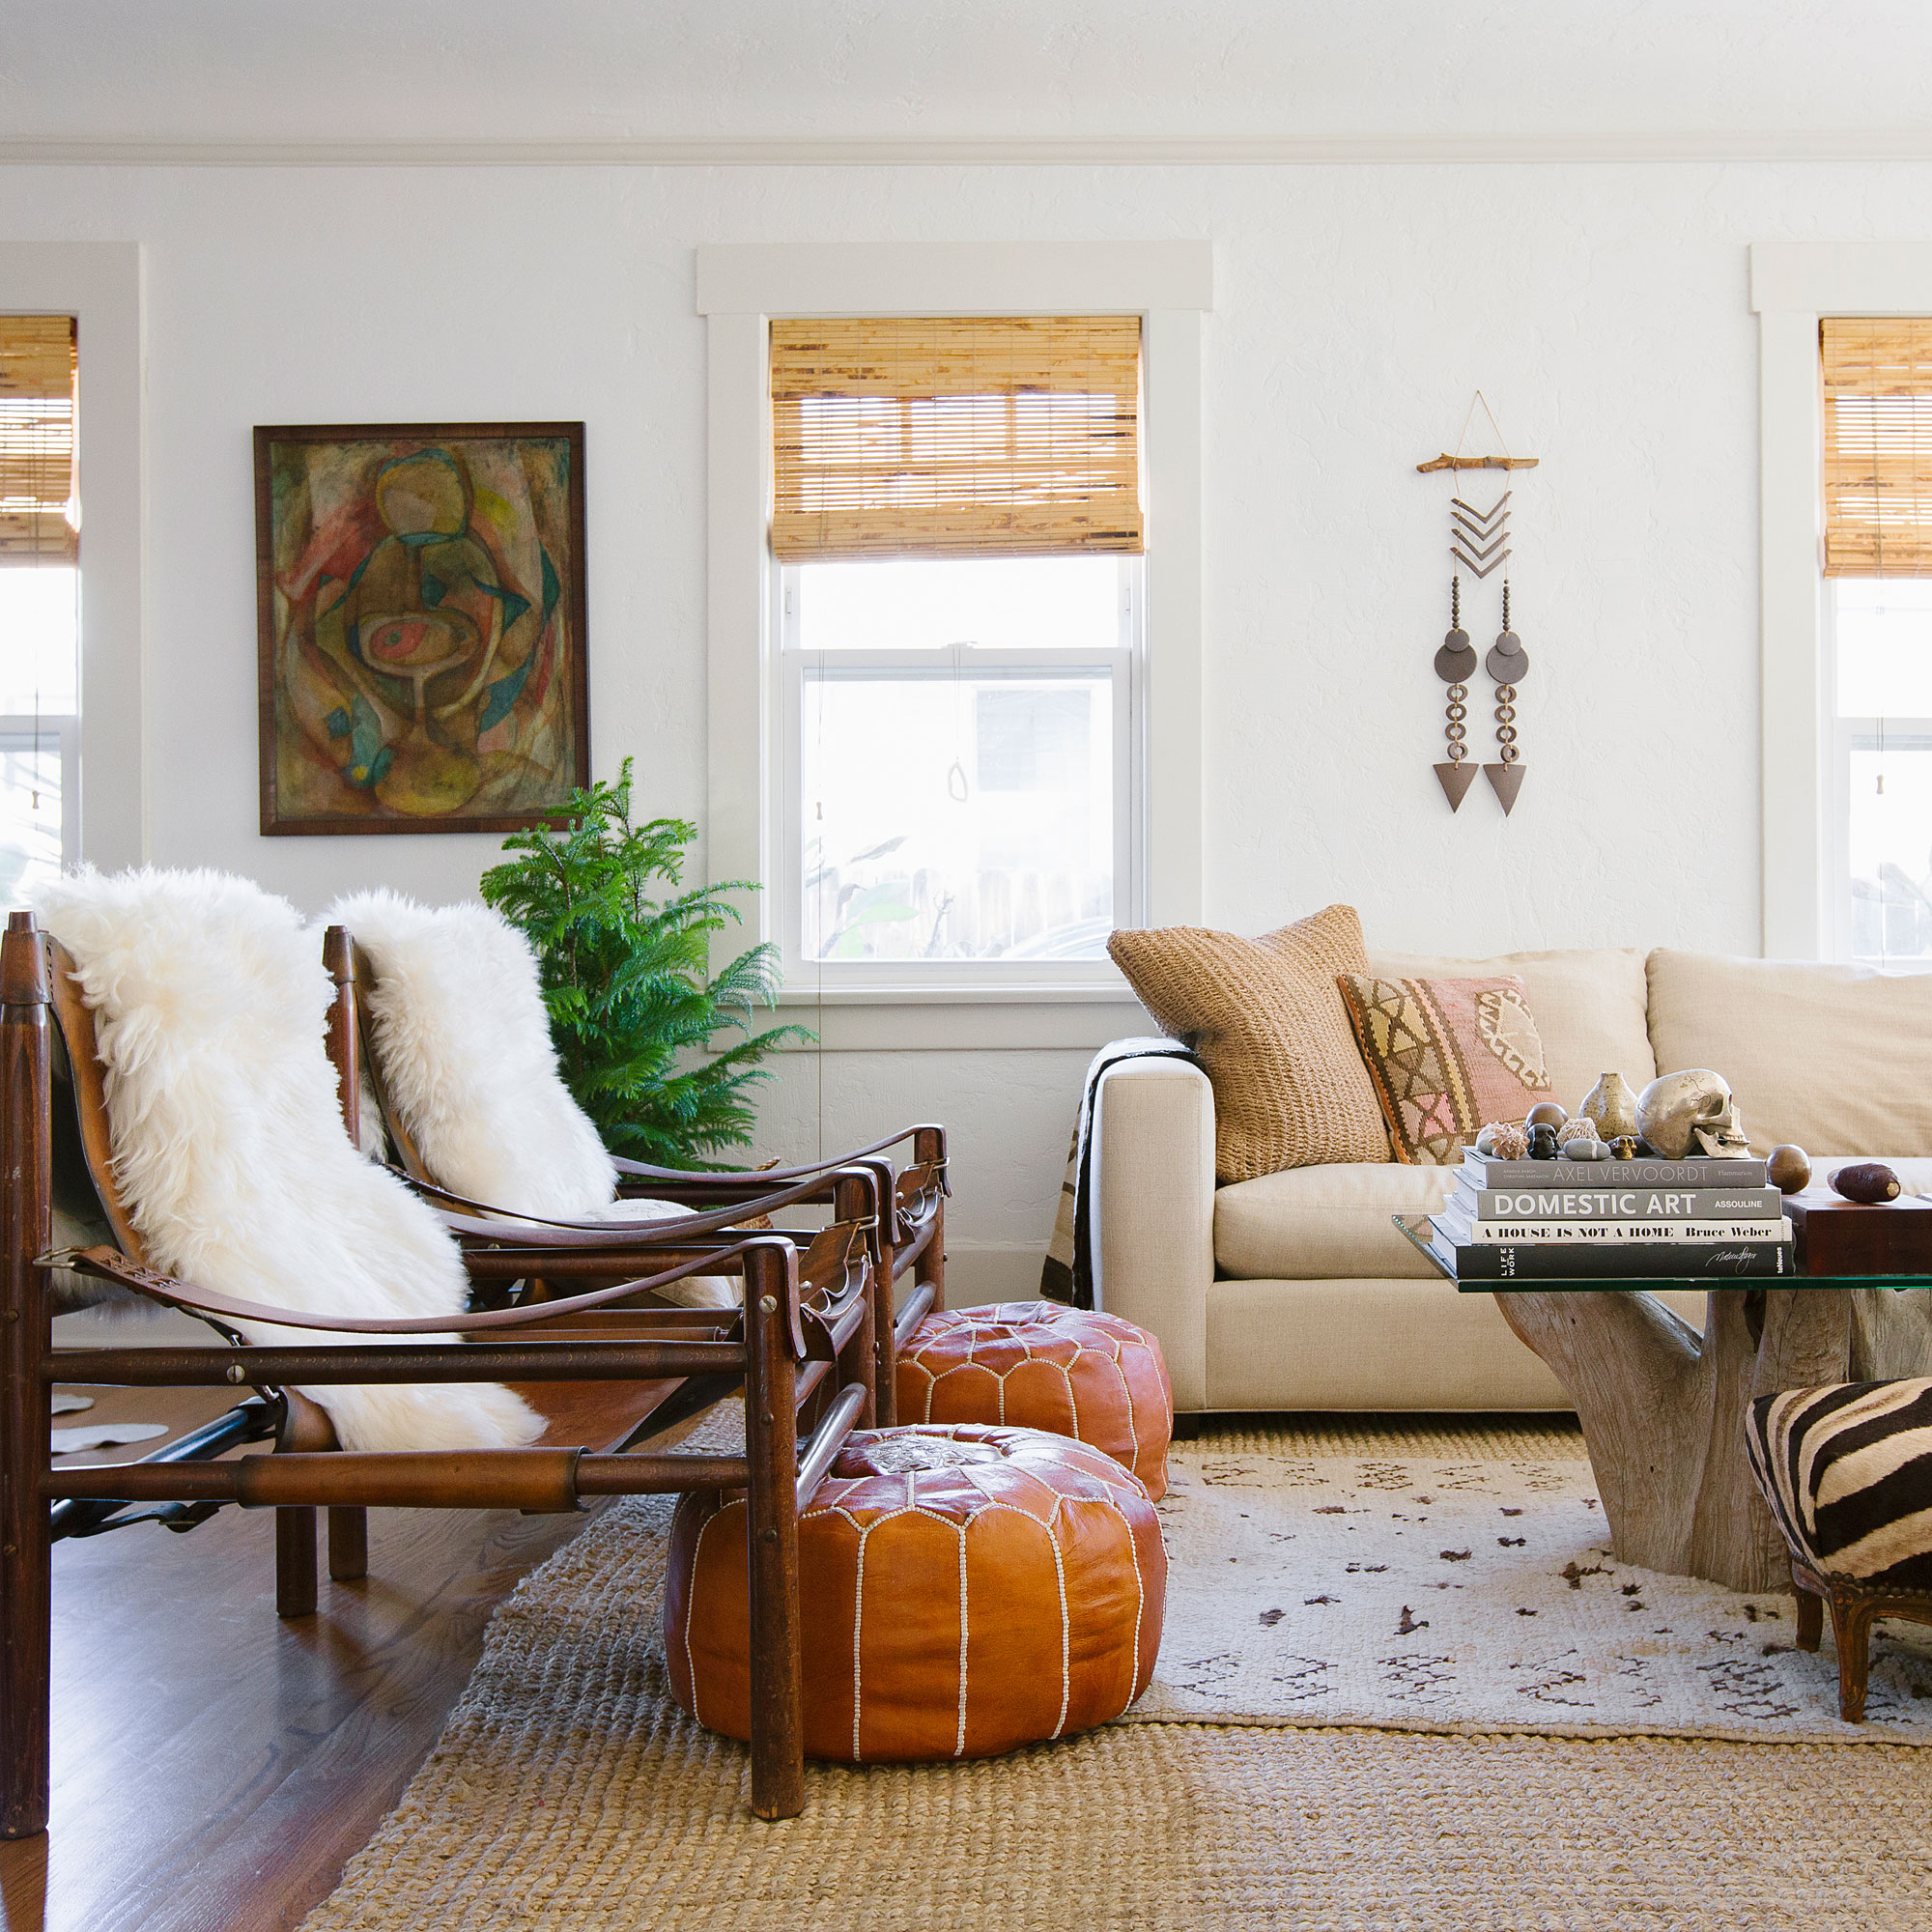 15 Ways to Decorate with Neutrals